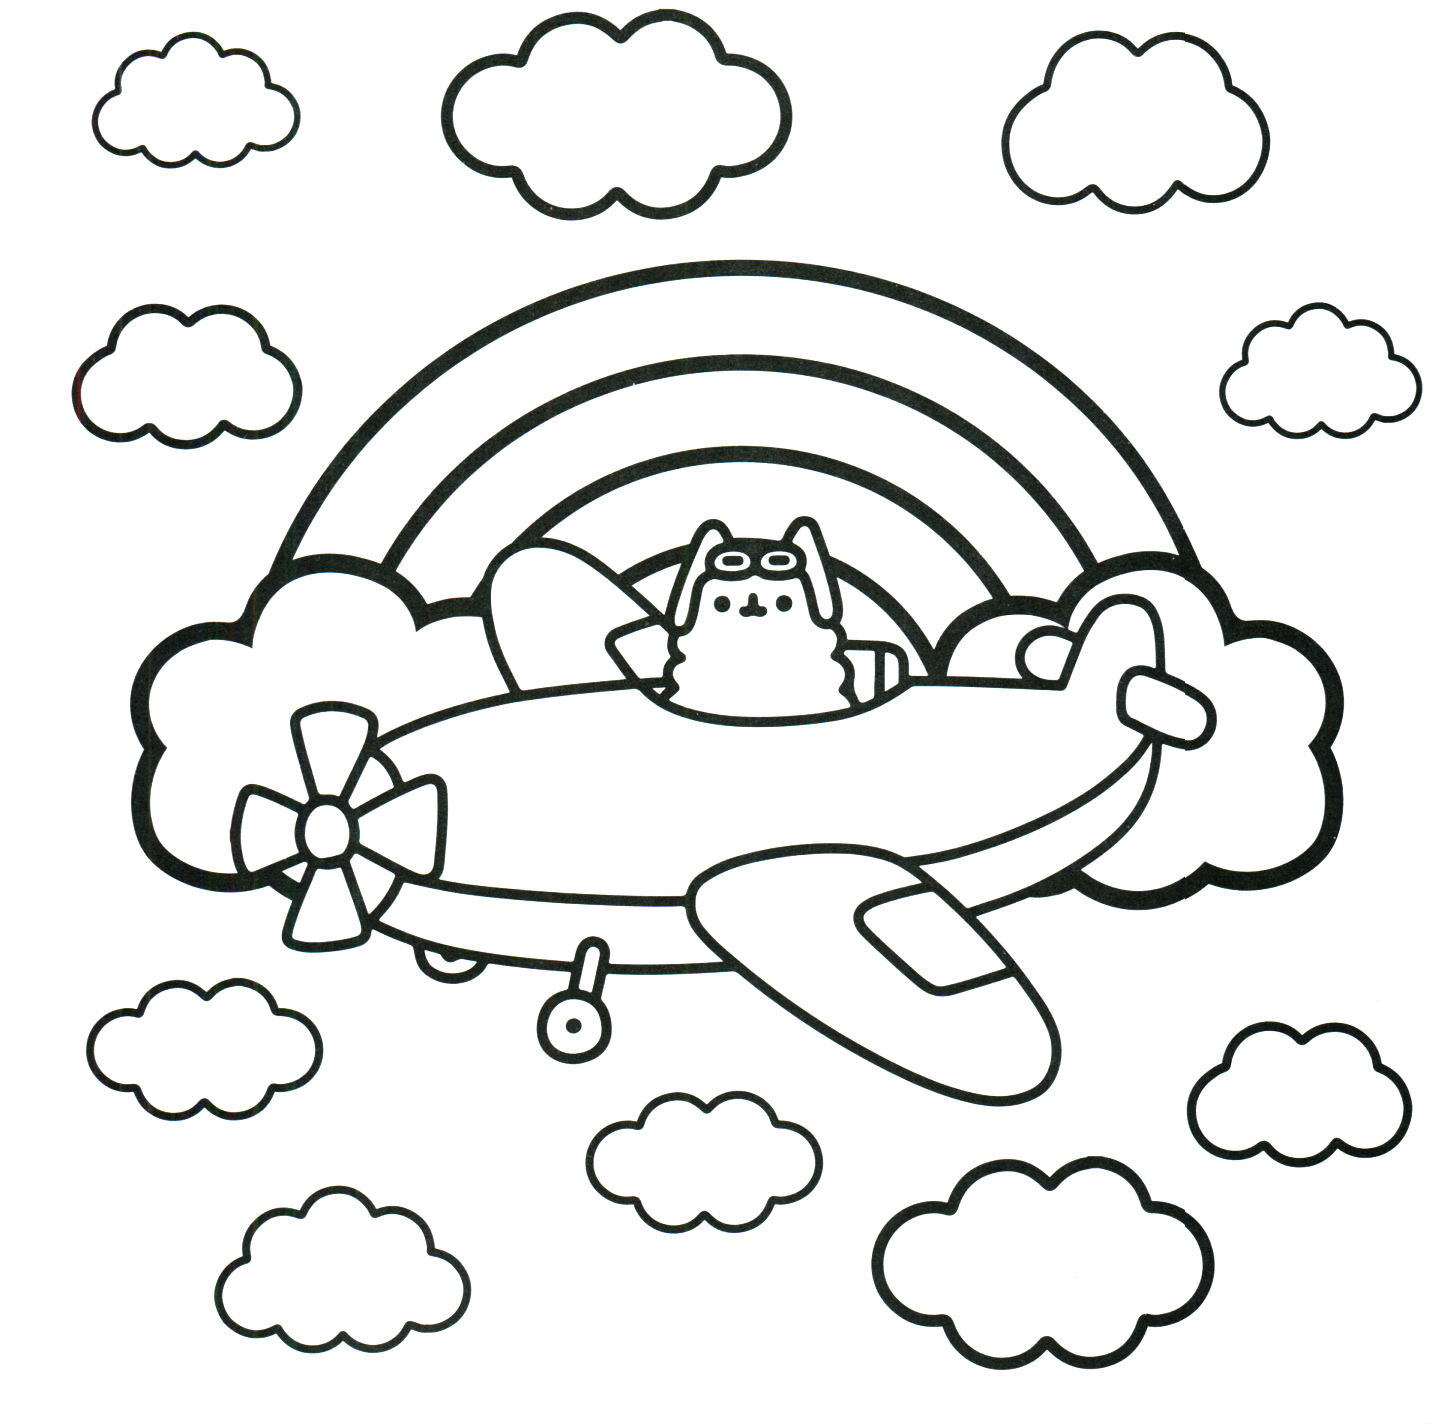 Pusheen Coloring Book Pusheen Pusheen the Cat | kittens | Pinterest ...